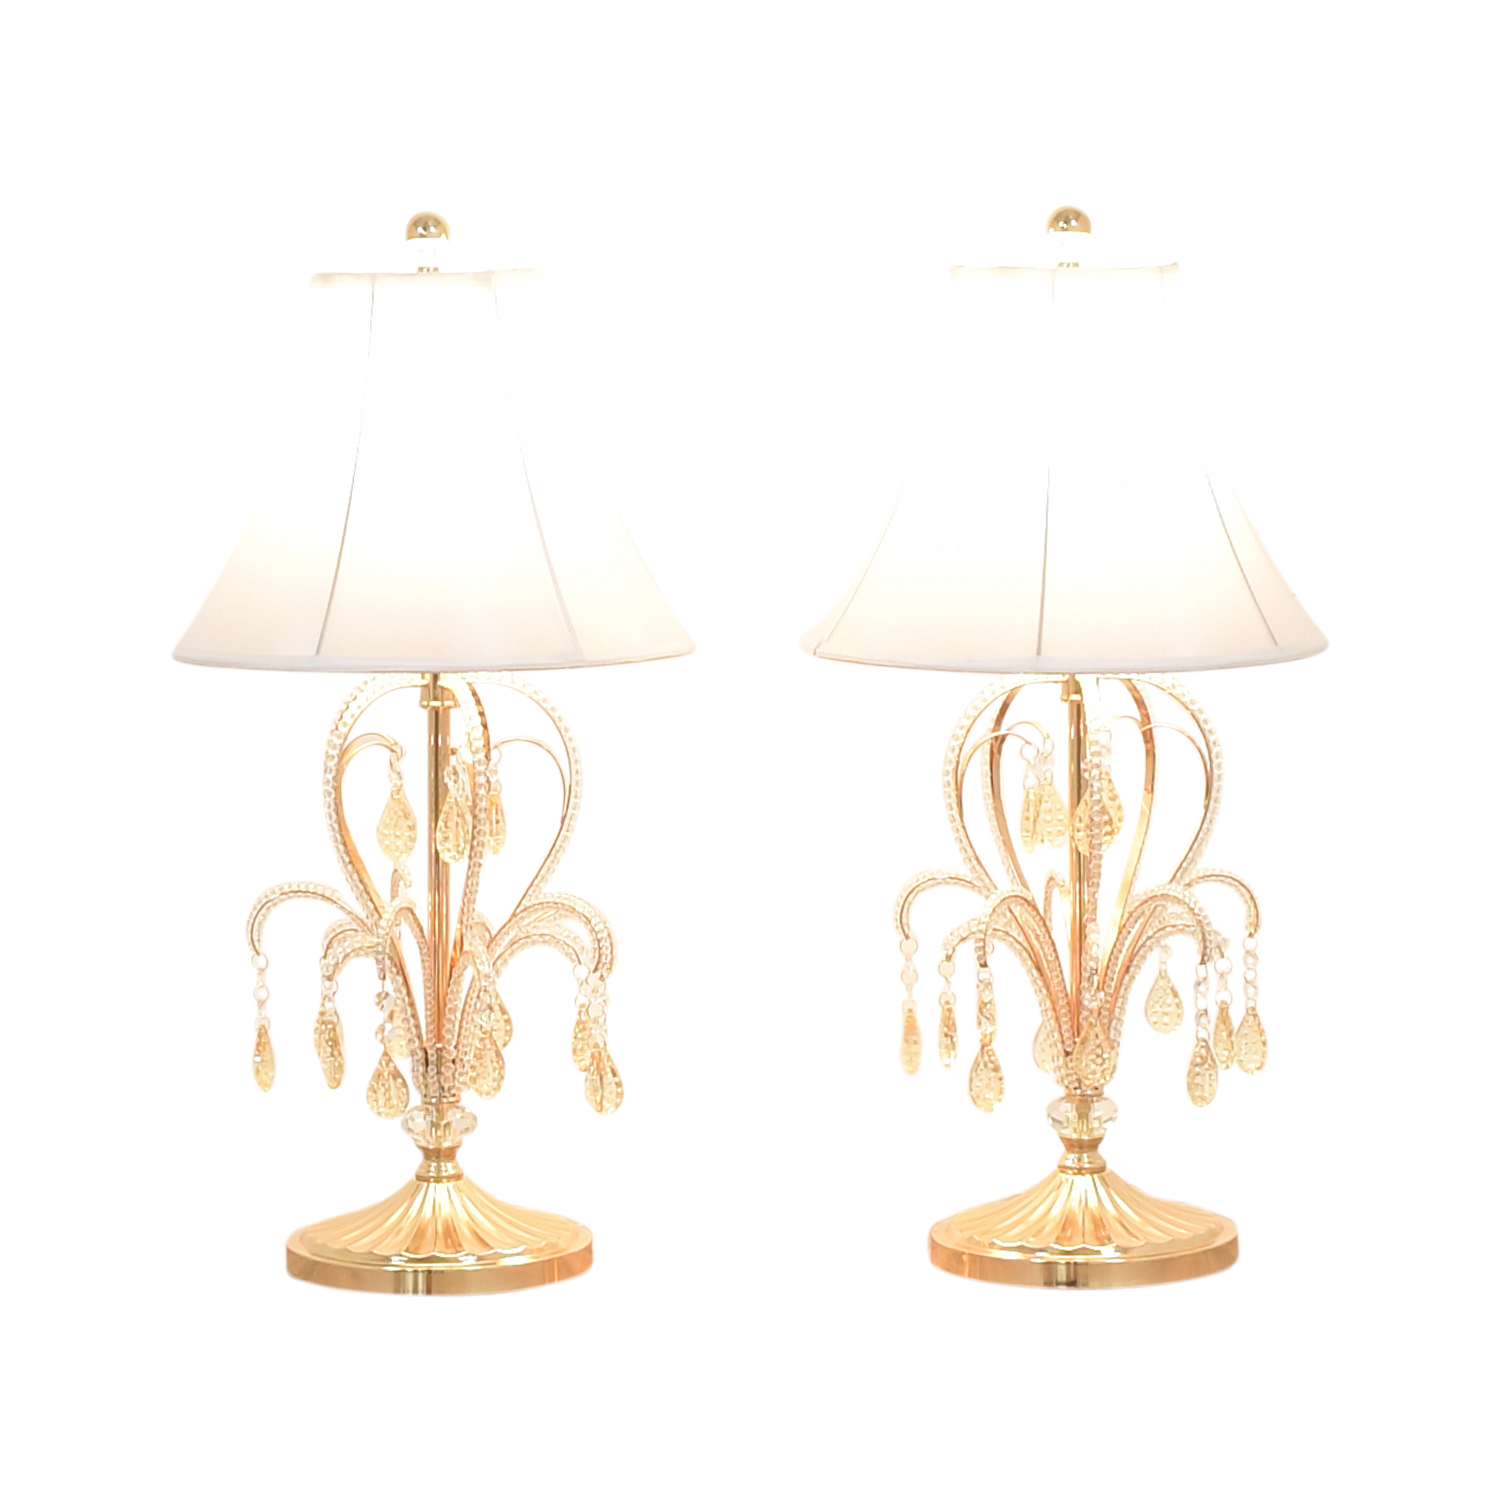 73 Off Chandelier Style Table Lamps Decor